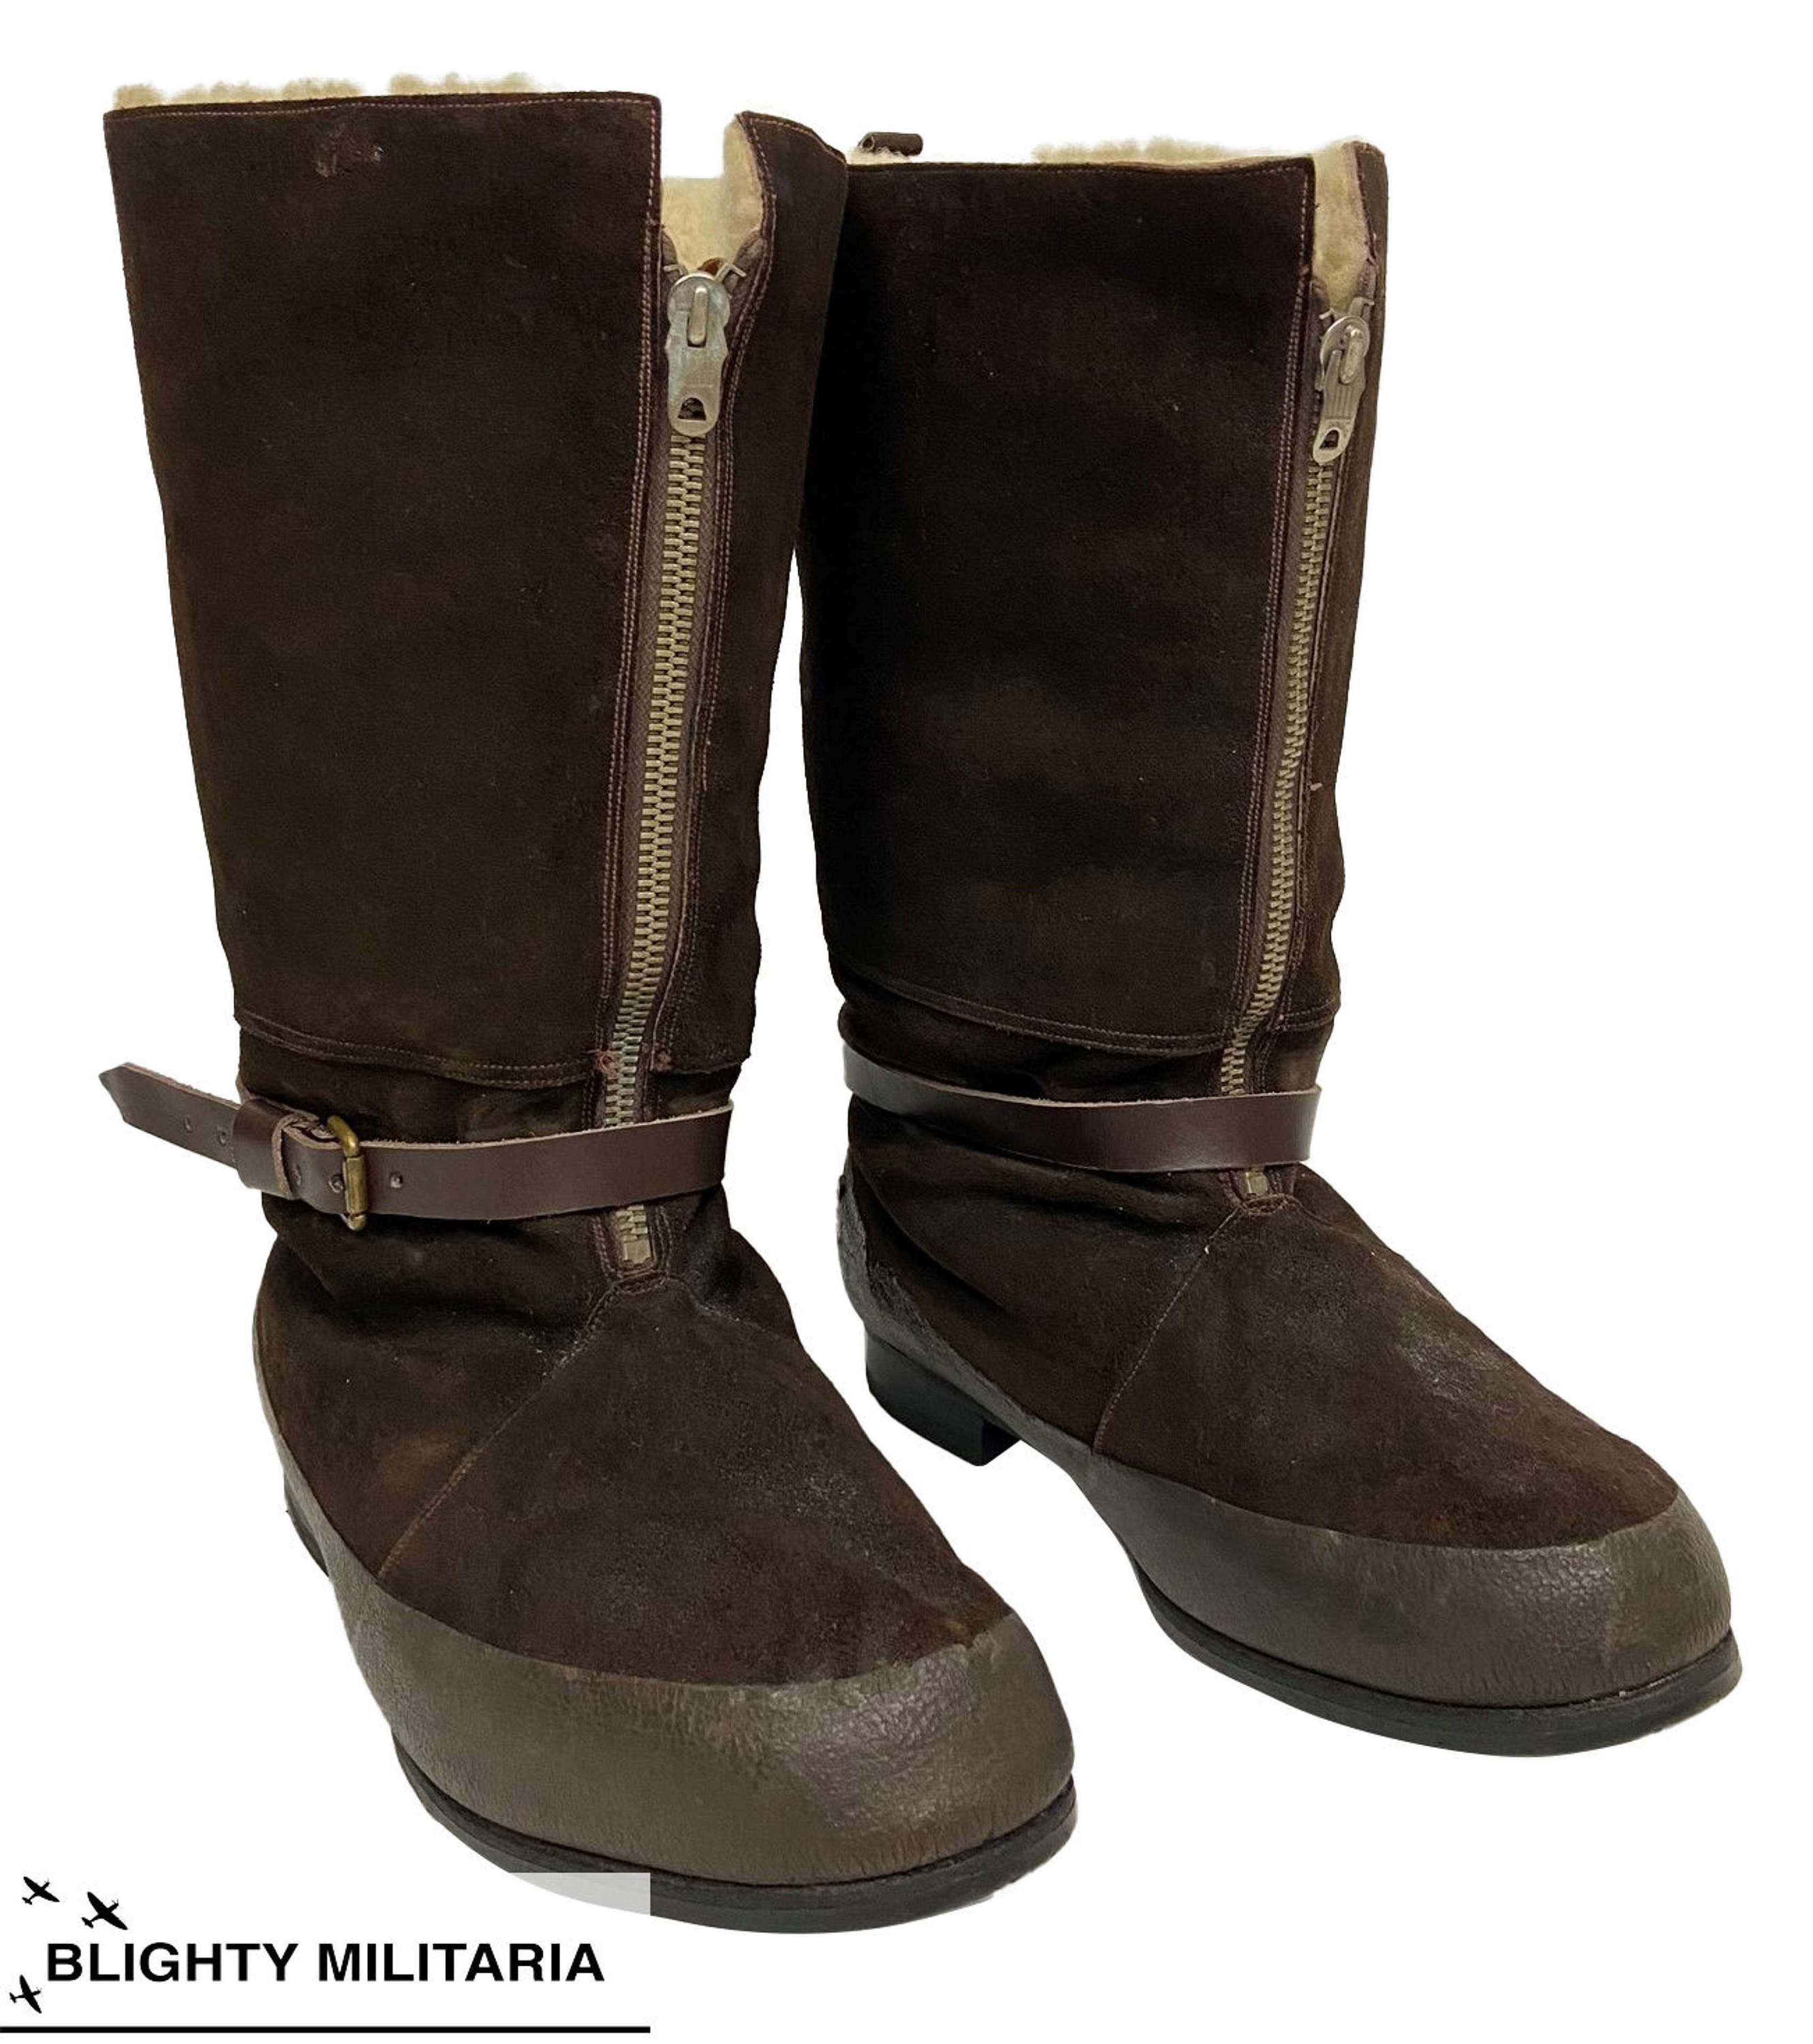 Original 1941 Pattern Flying Boots - Size 9